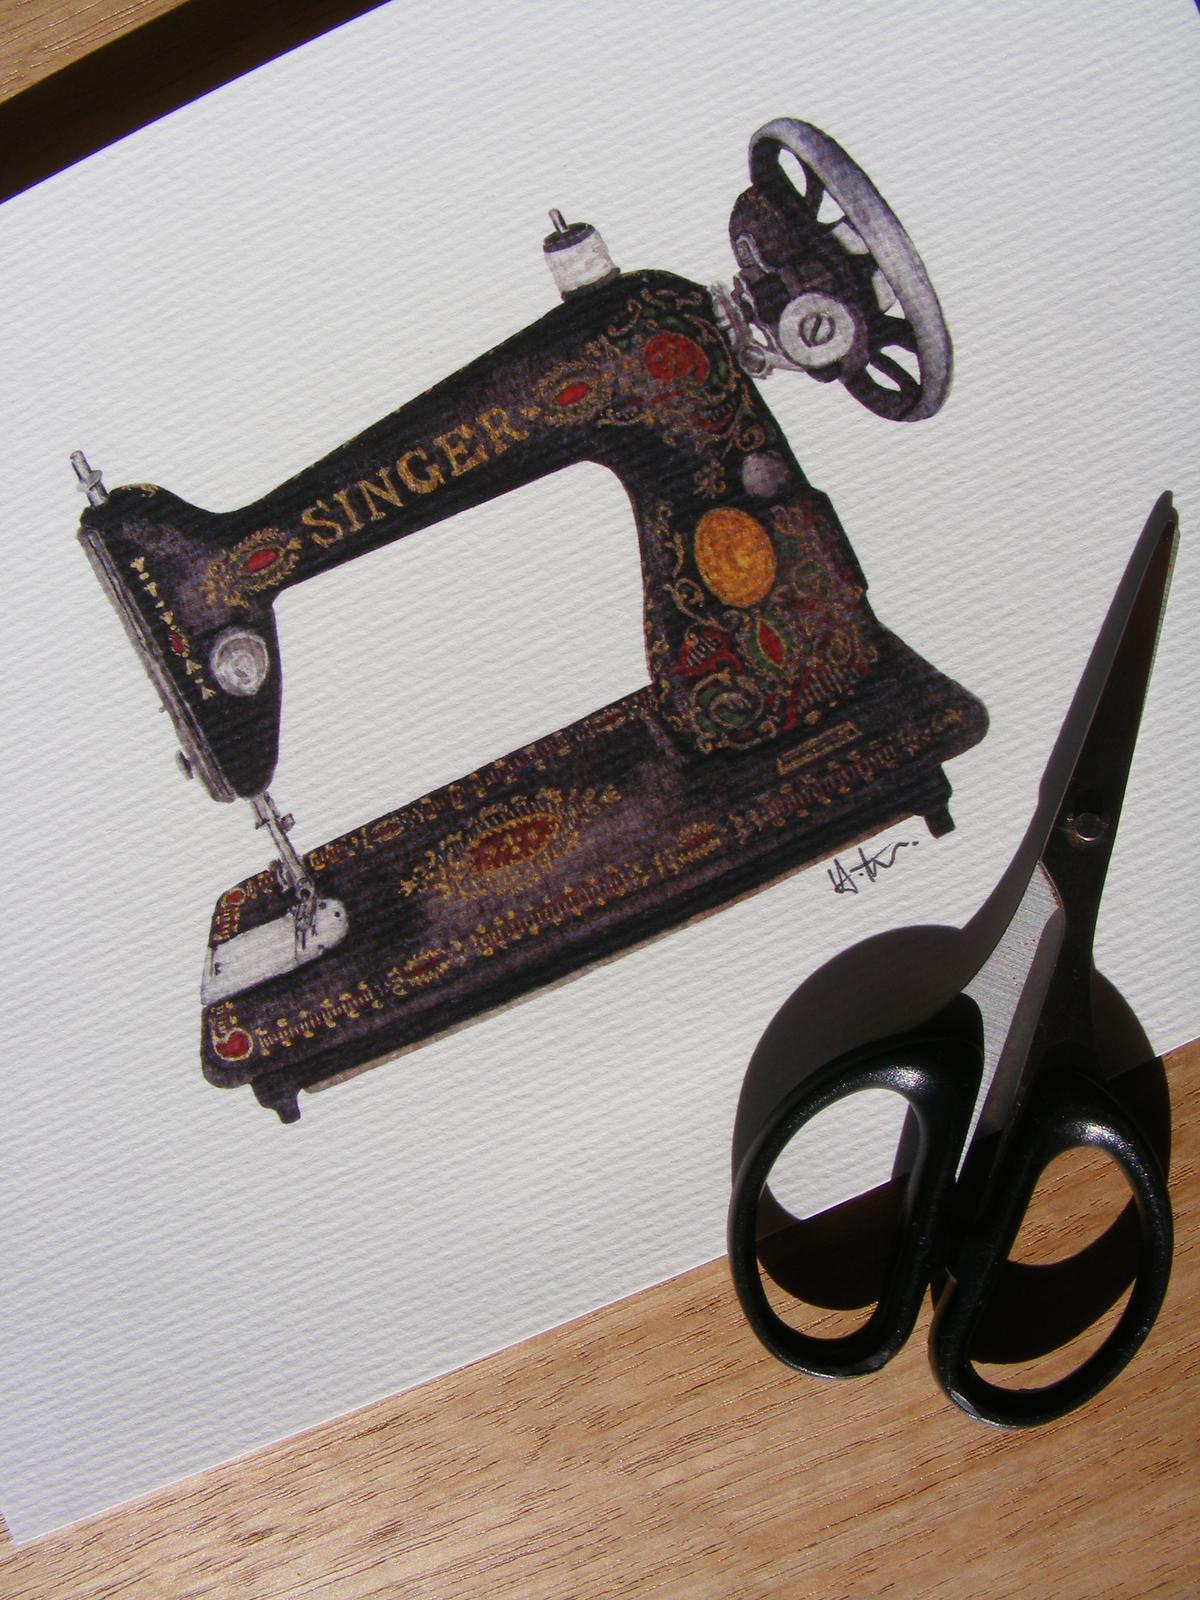 Singer Sewing Machine - Watercolour Illustration Print